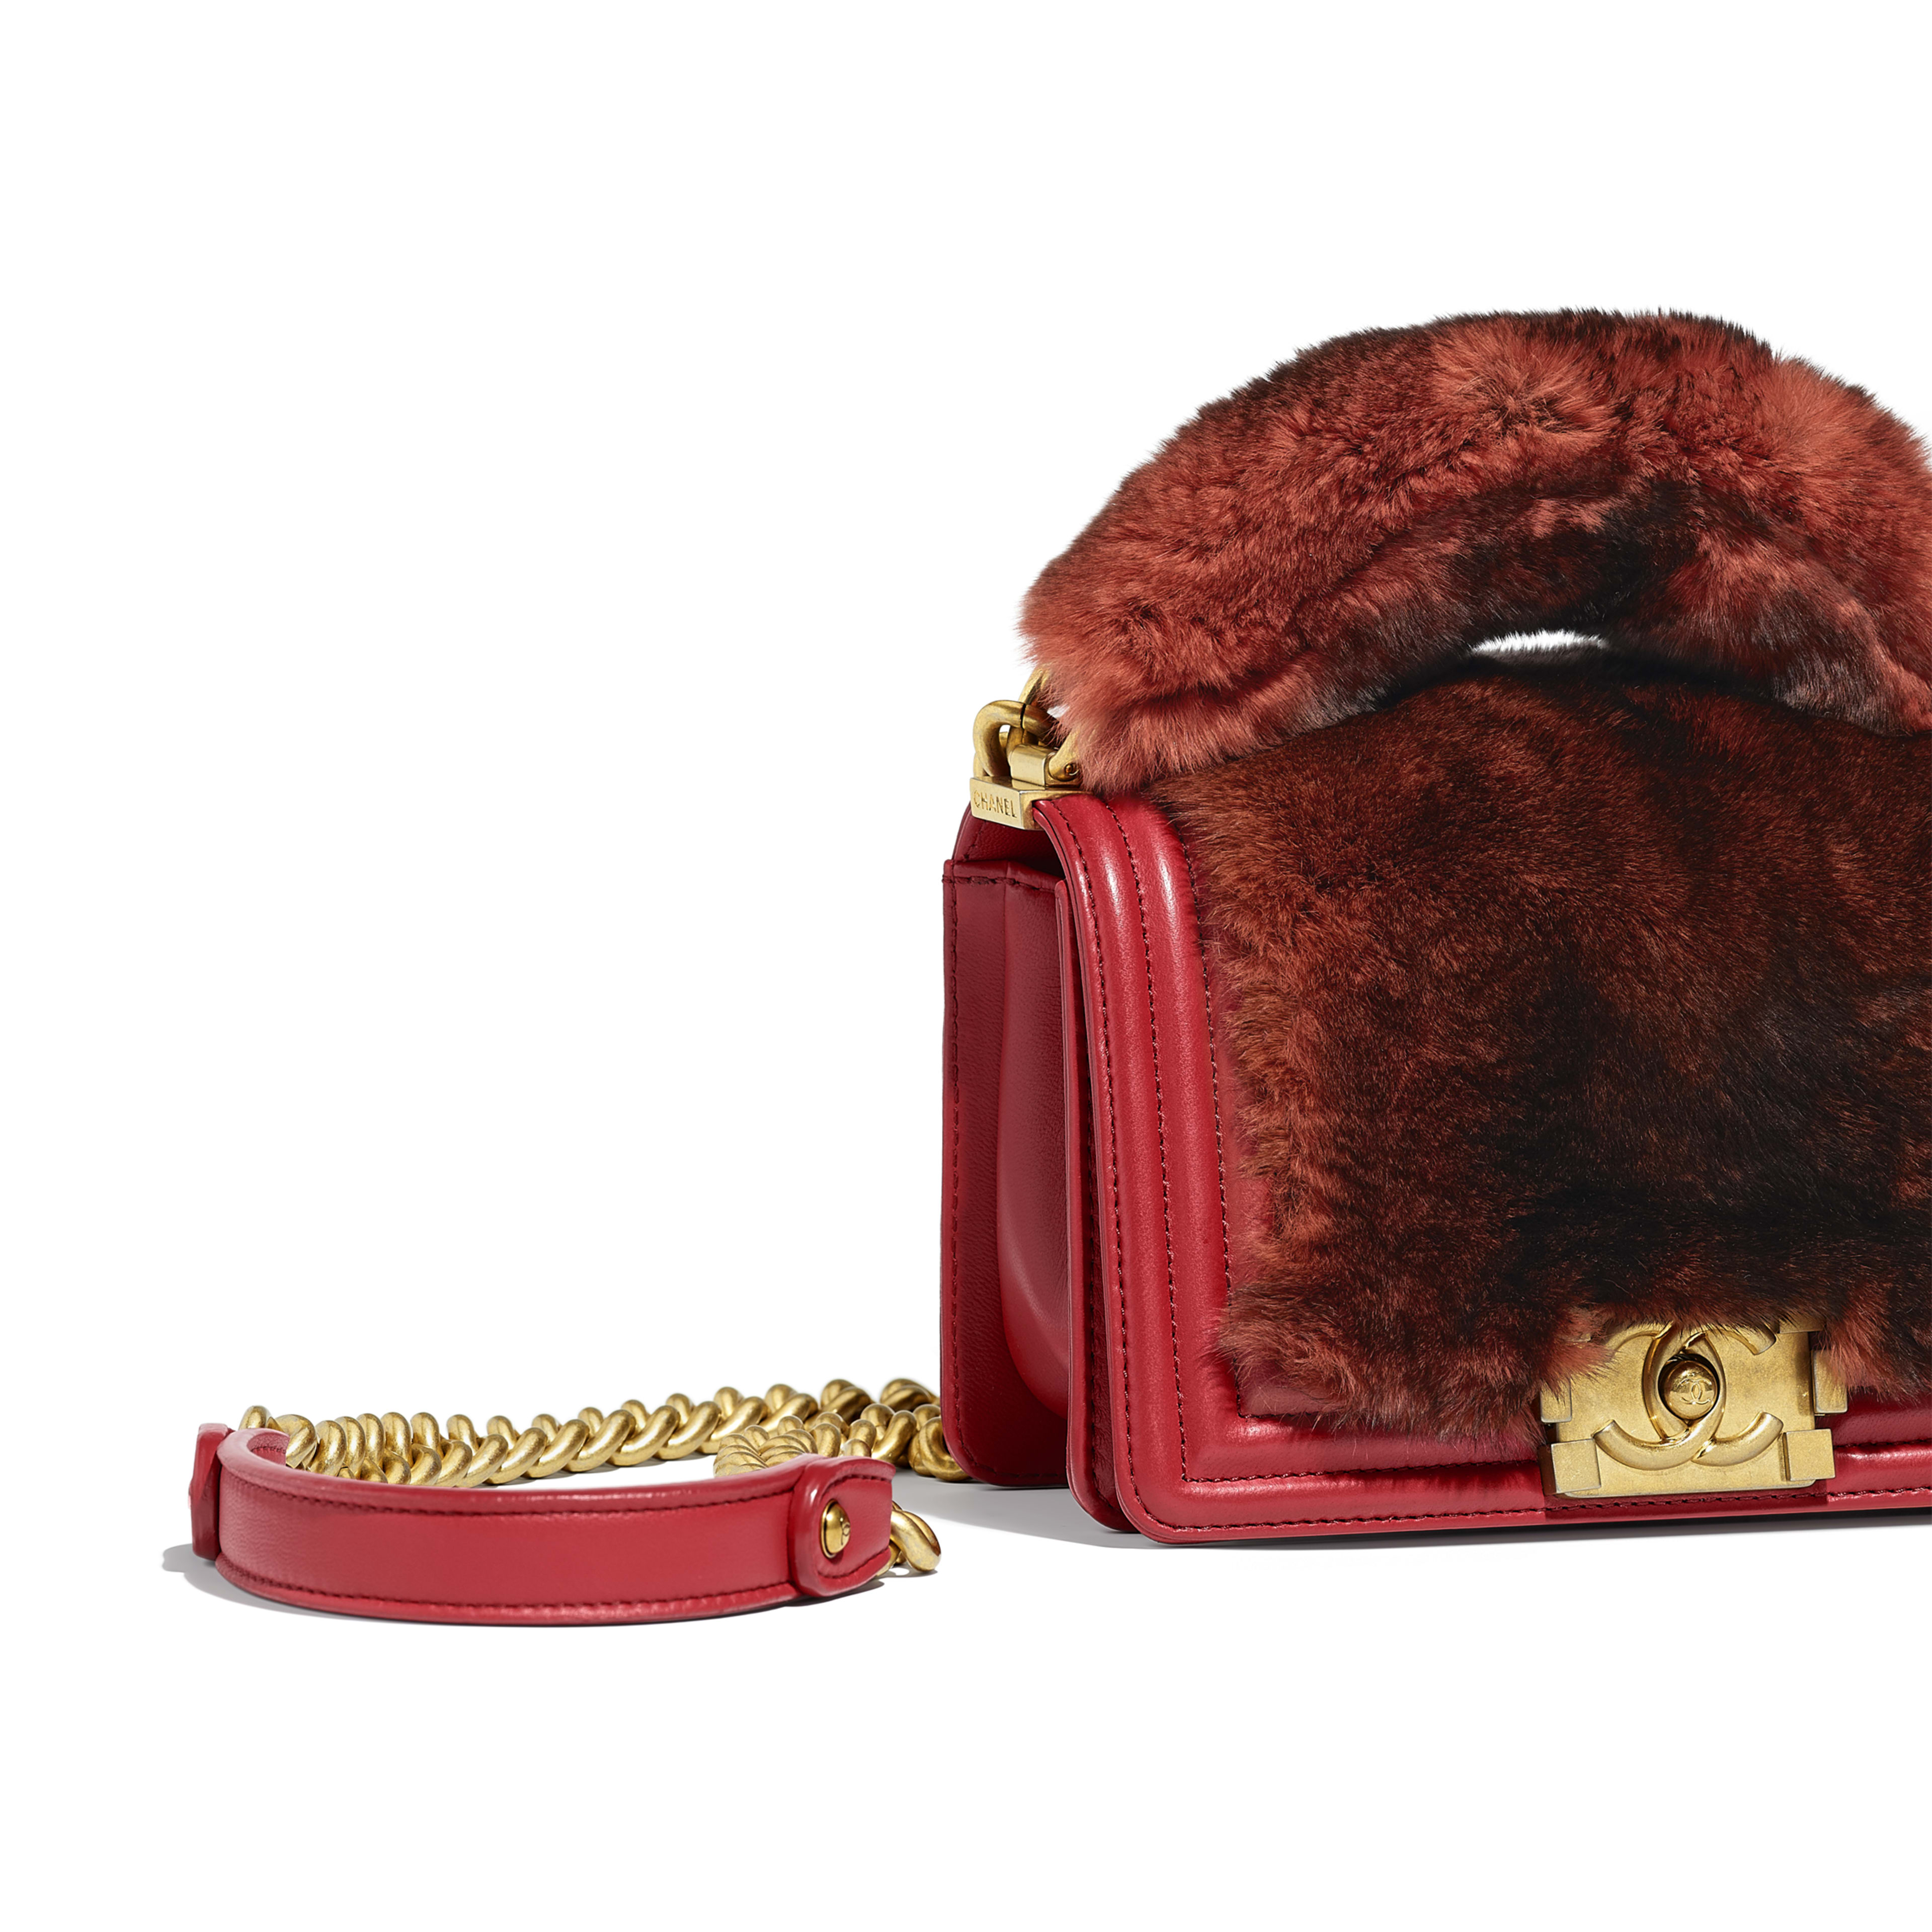 BOY CHANEL Flap Bag with Handle Orylag, Calfskin & Gold-Tone Metal Red -                                            view 3 - see full sized version